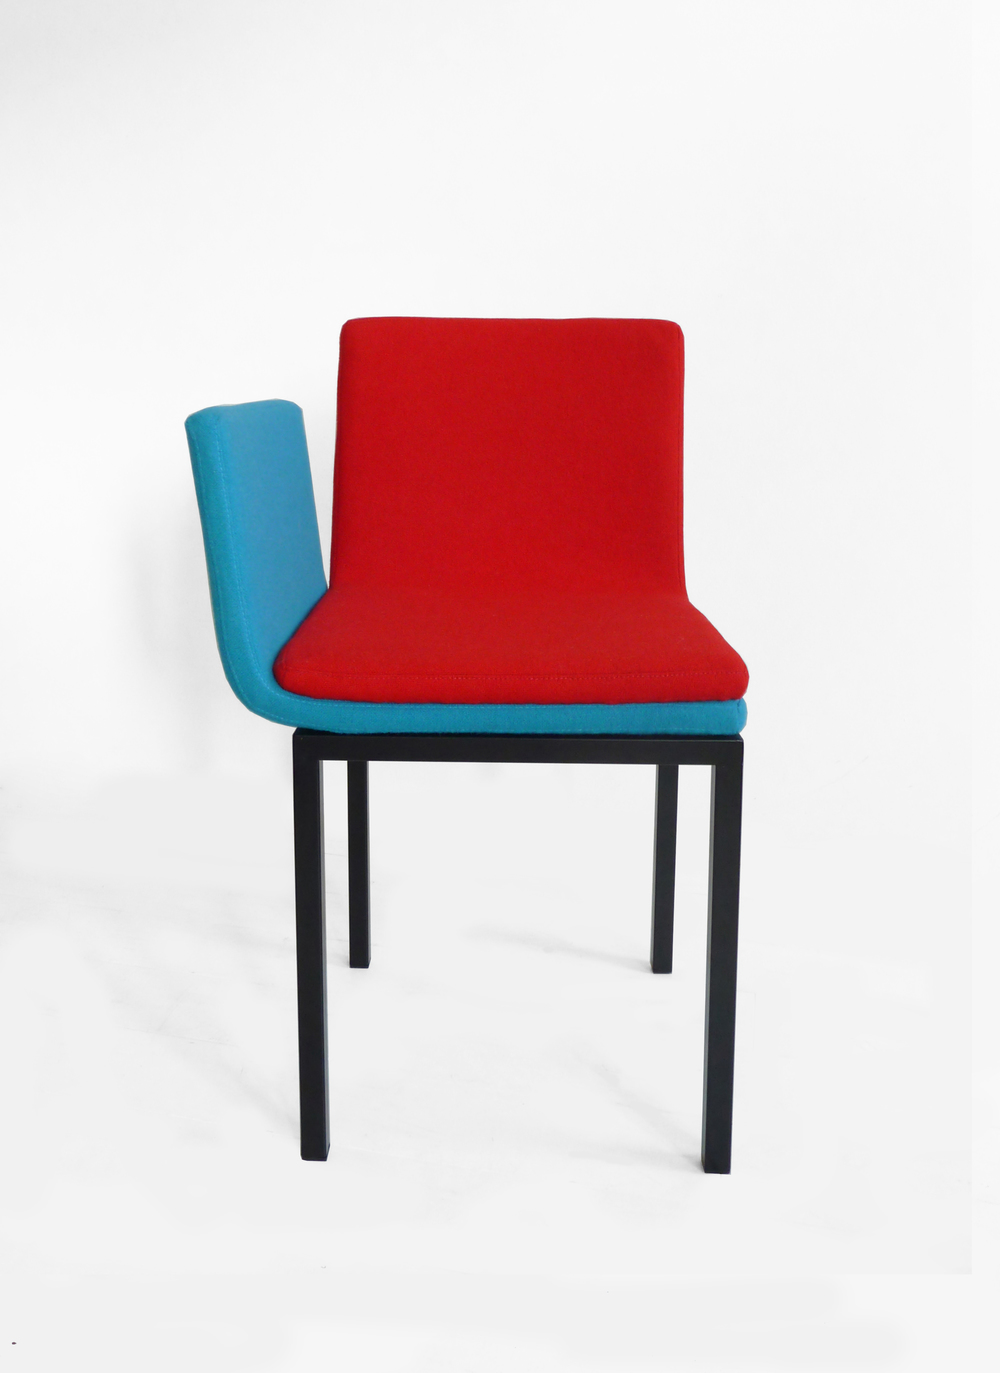 red blue chair 3.jpg